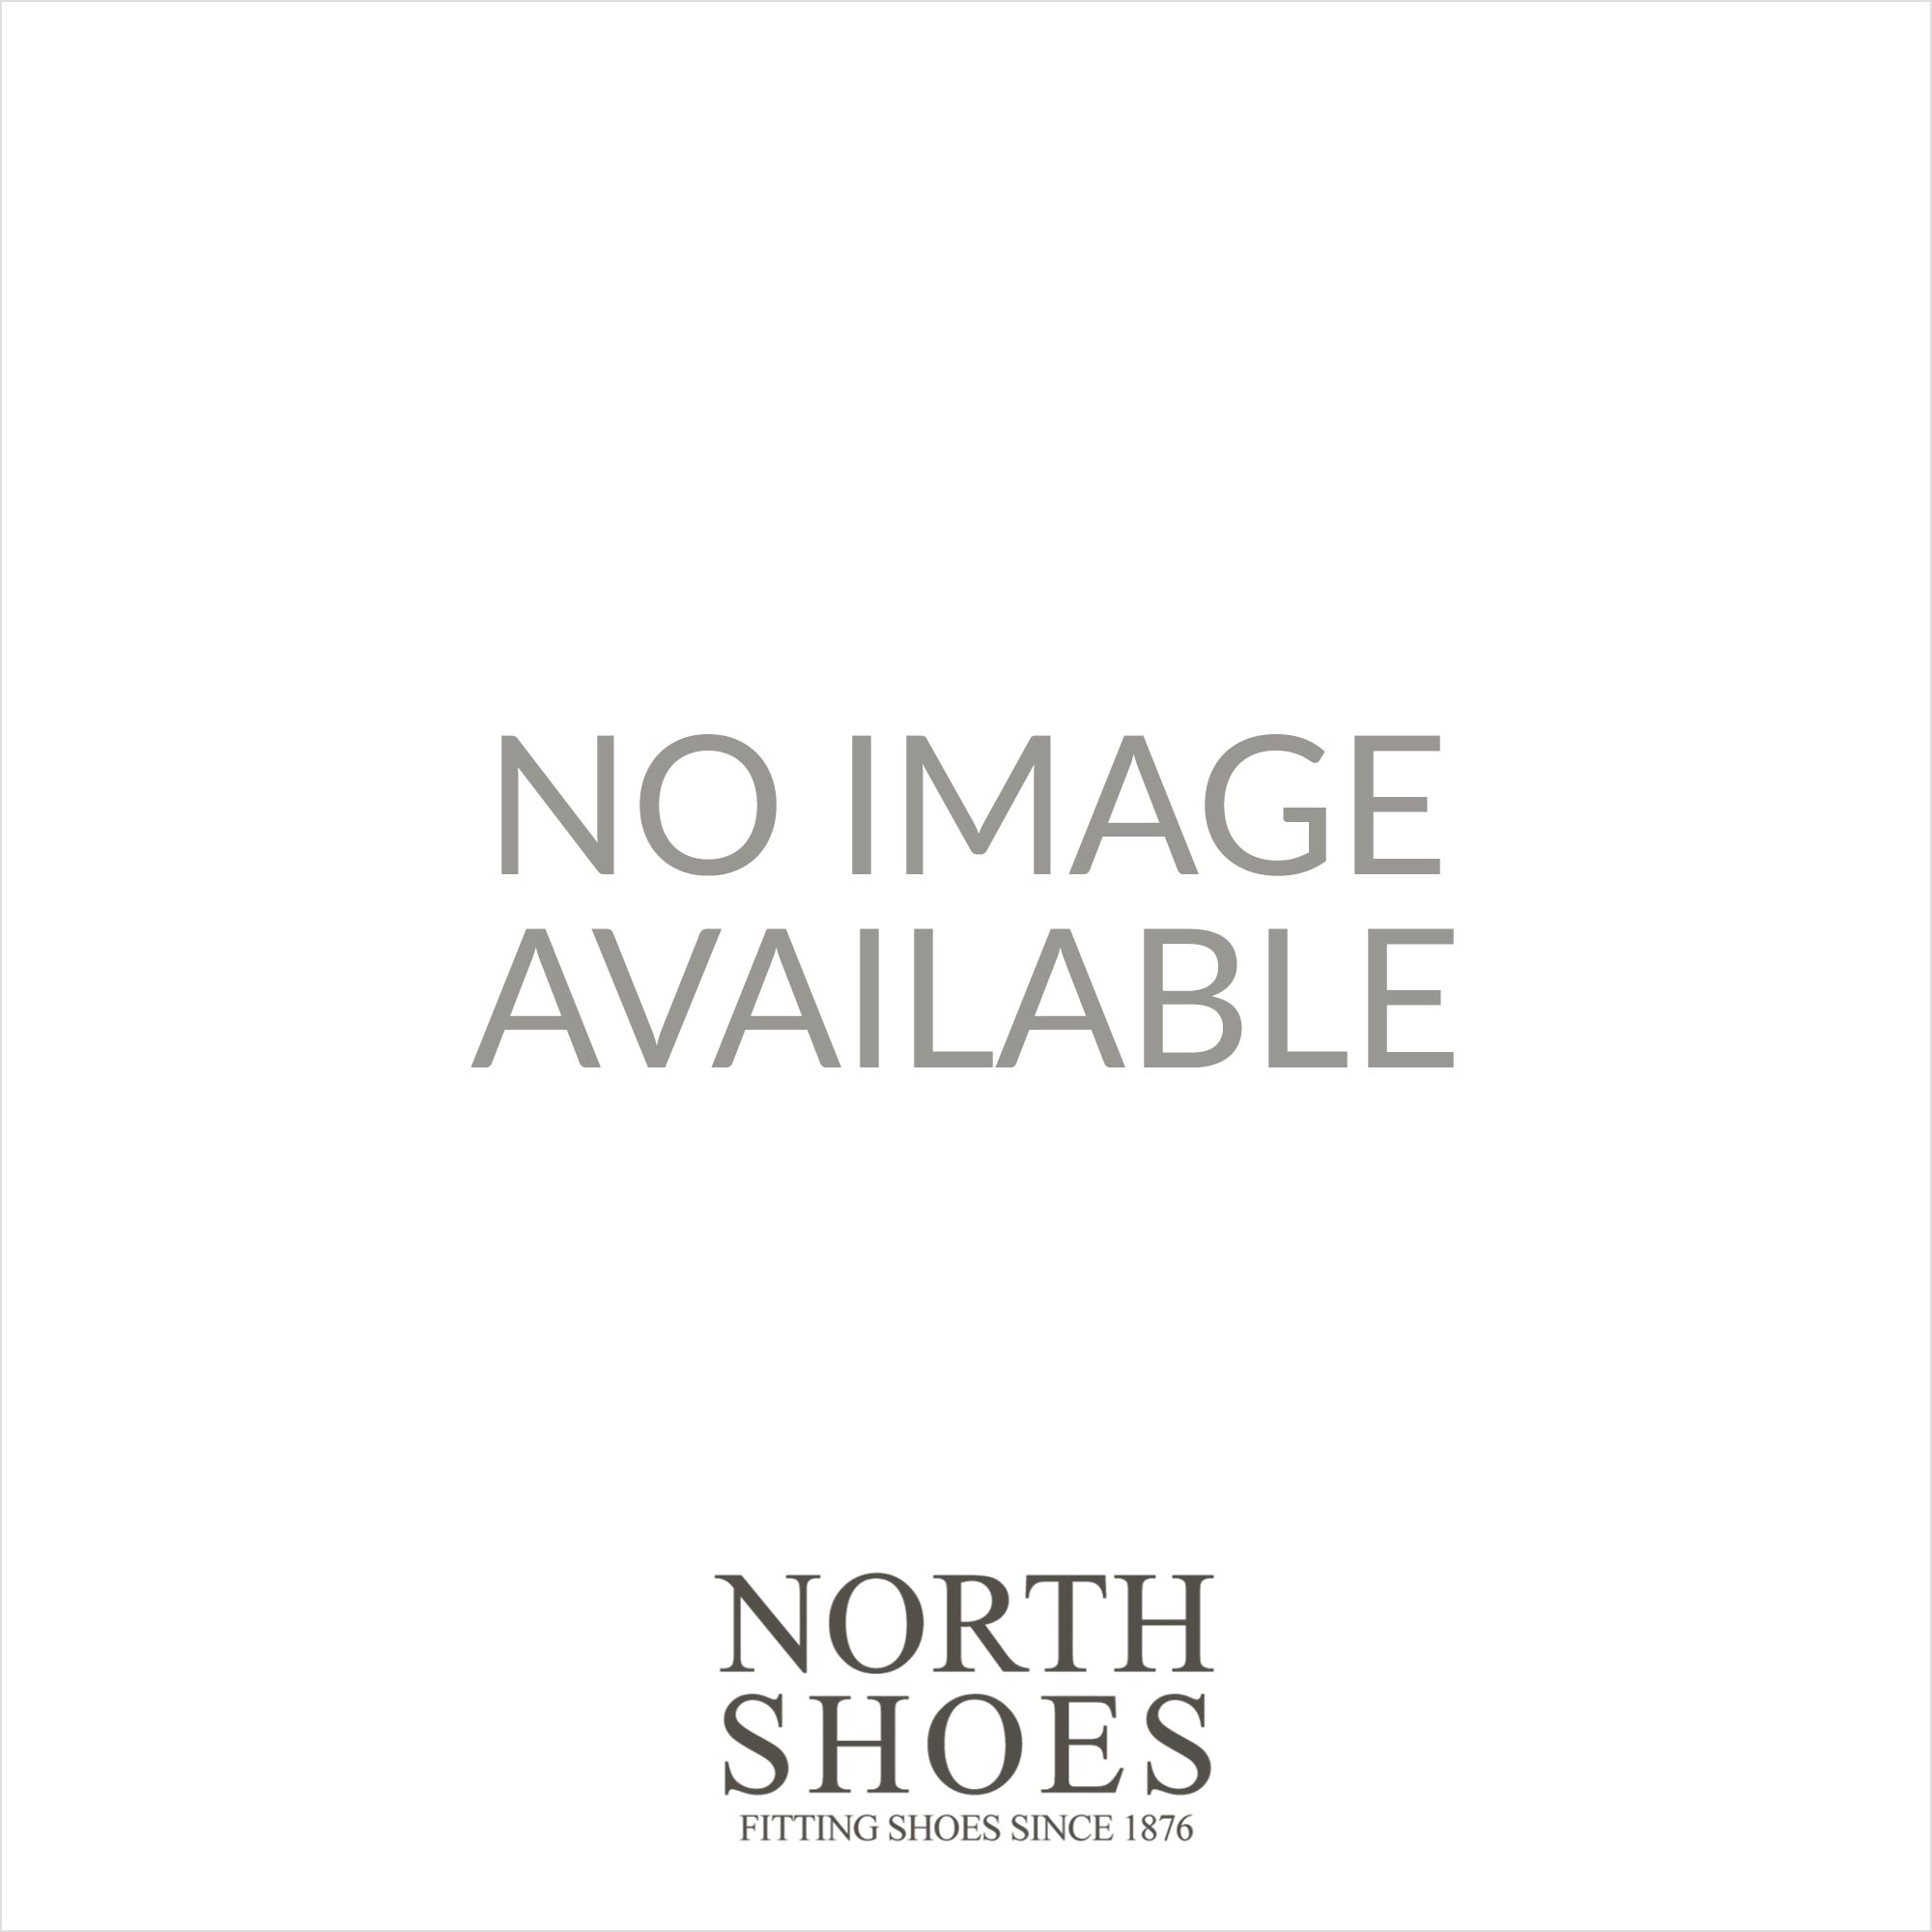 be7653e990e30 Mens Clarks Crown Piper Burgundy/Pink Suede Leather Girls Warm ...